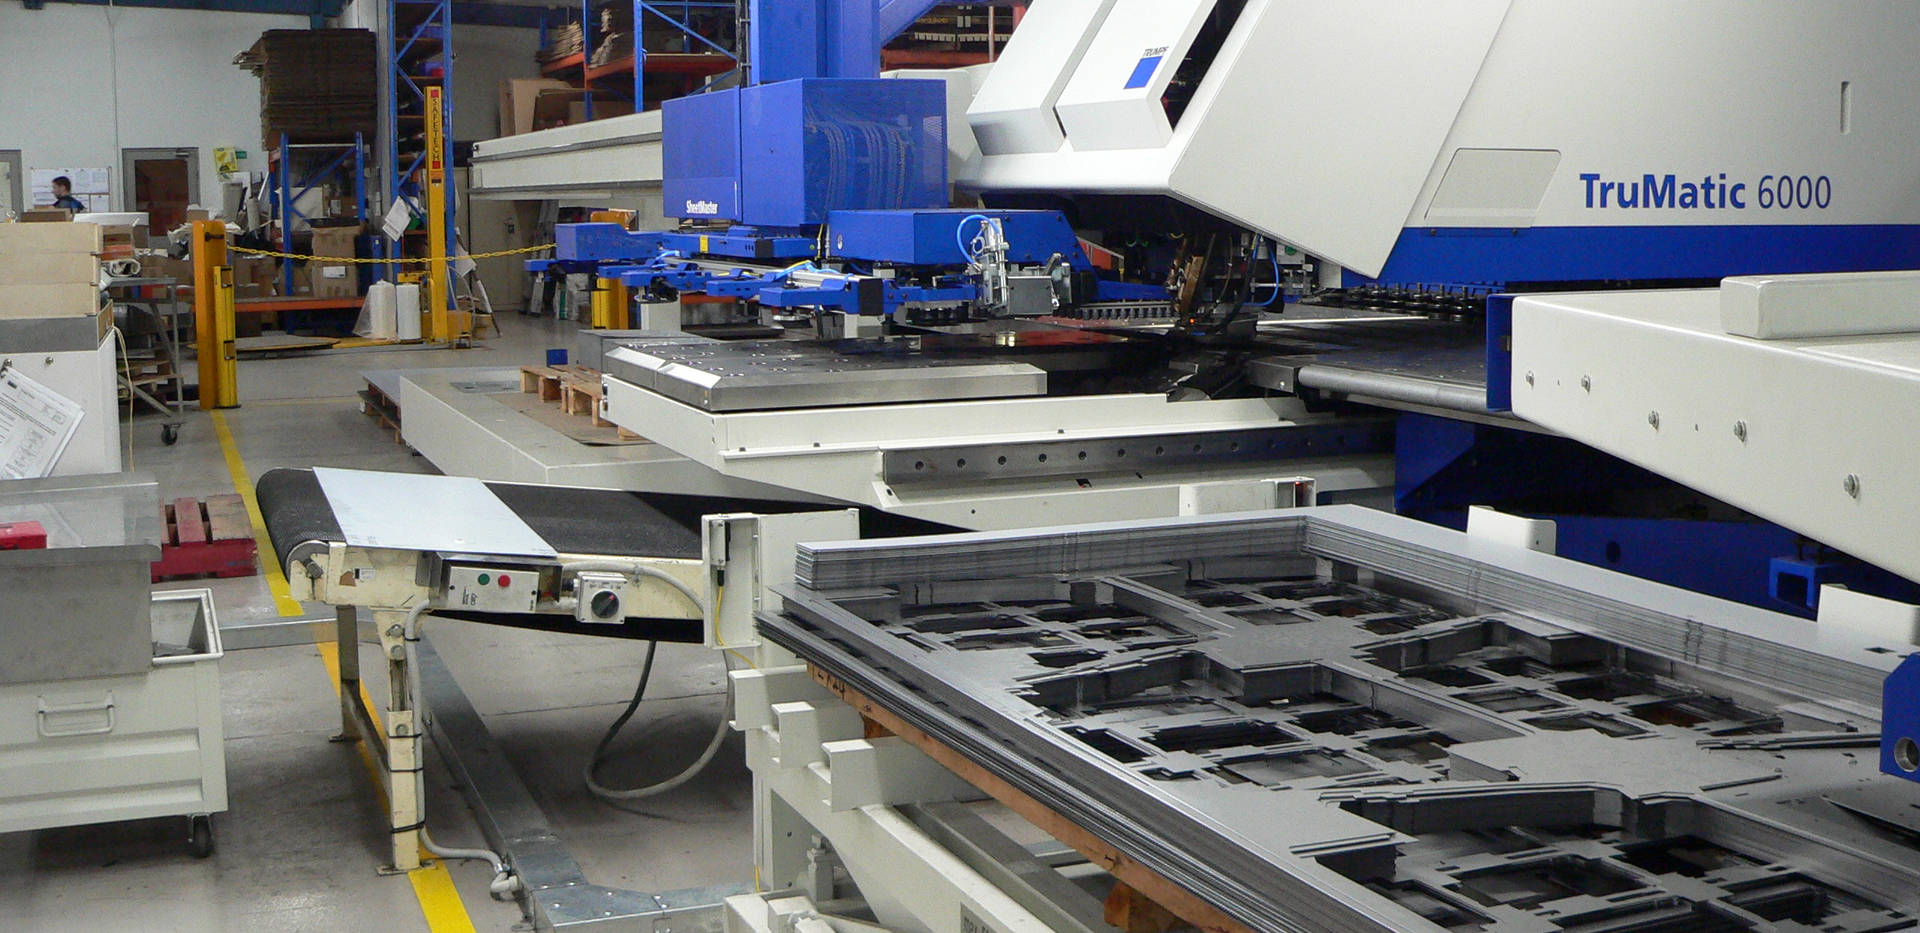 CNC Laser / Punch Press Combination with Automatic Sheet Feeder at Interfab